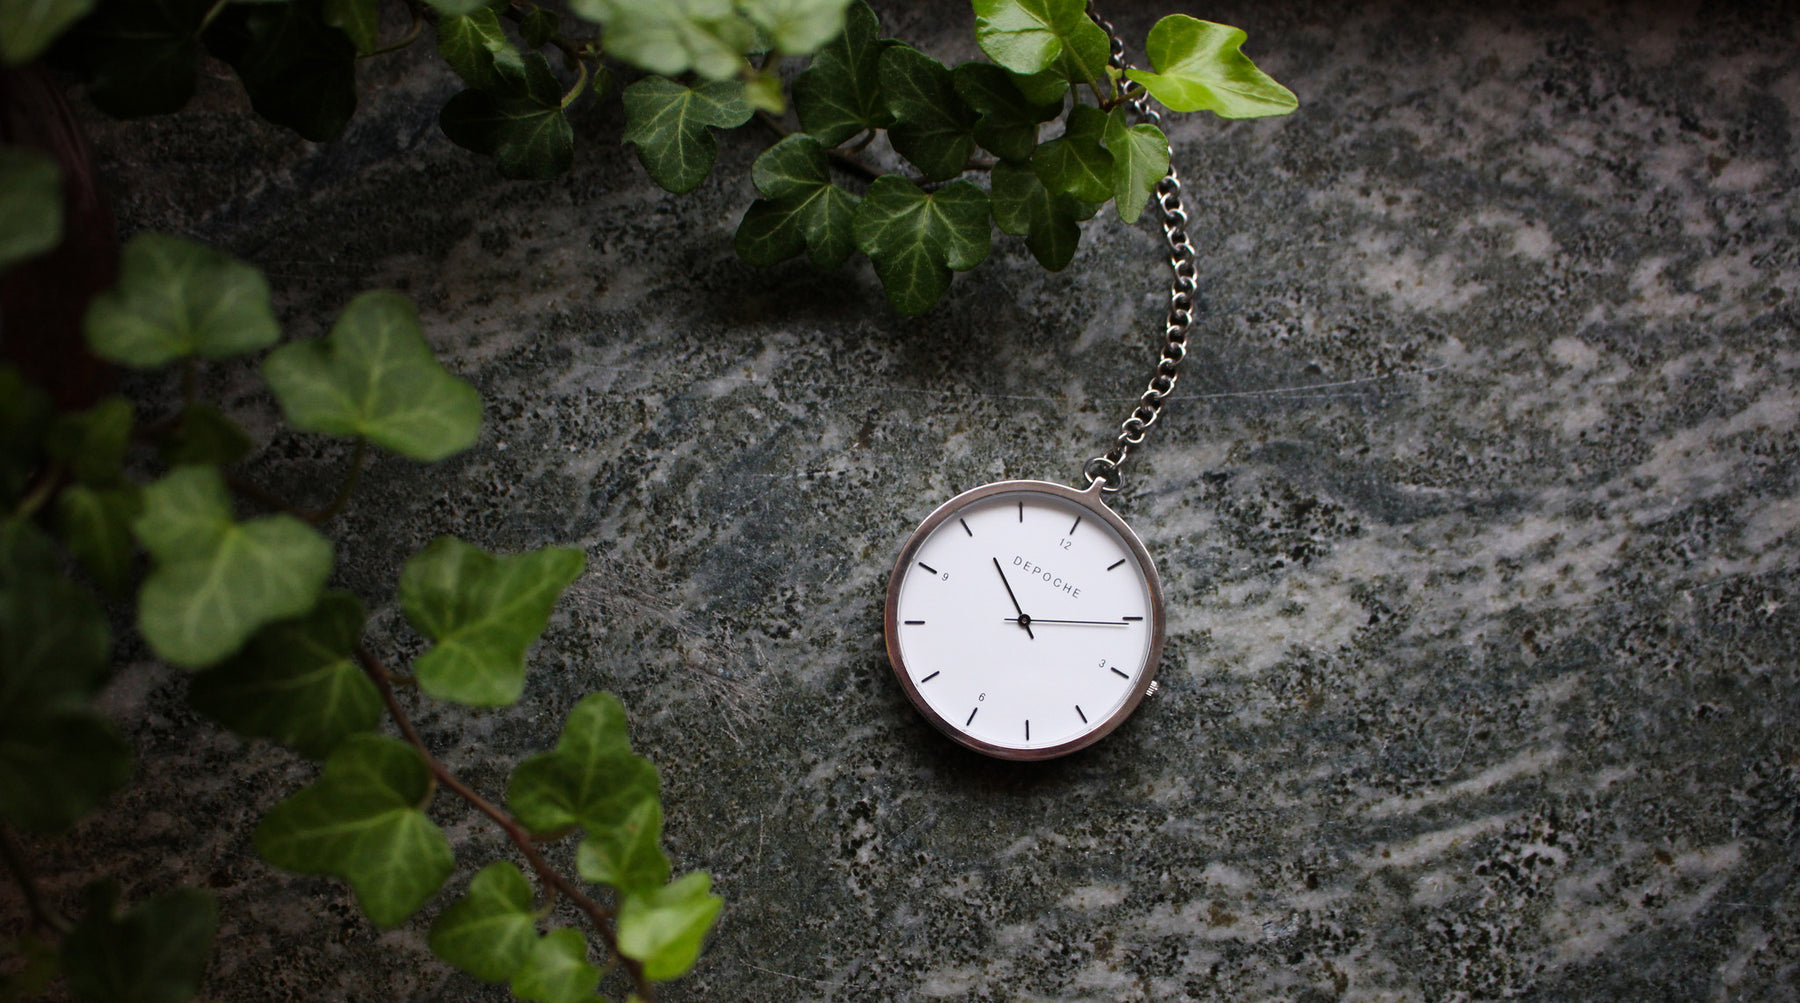 Depoche silver pocket watch on marble